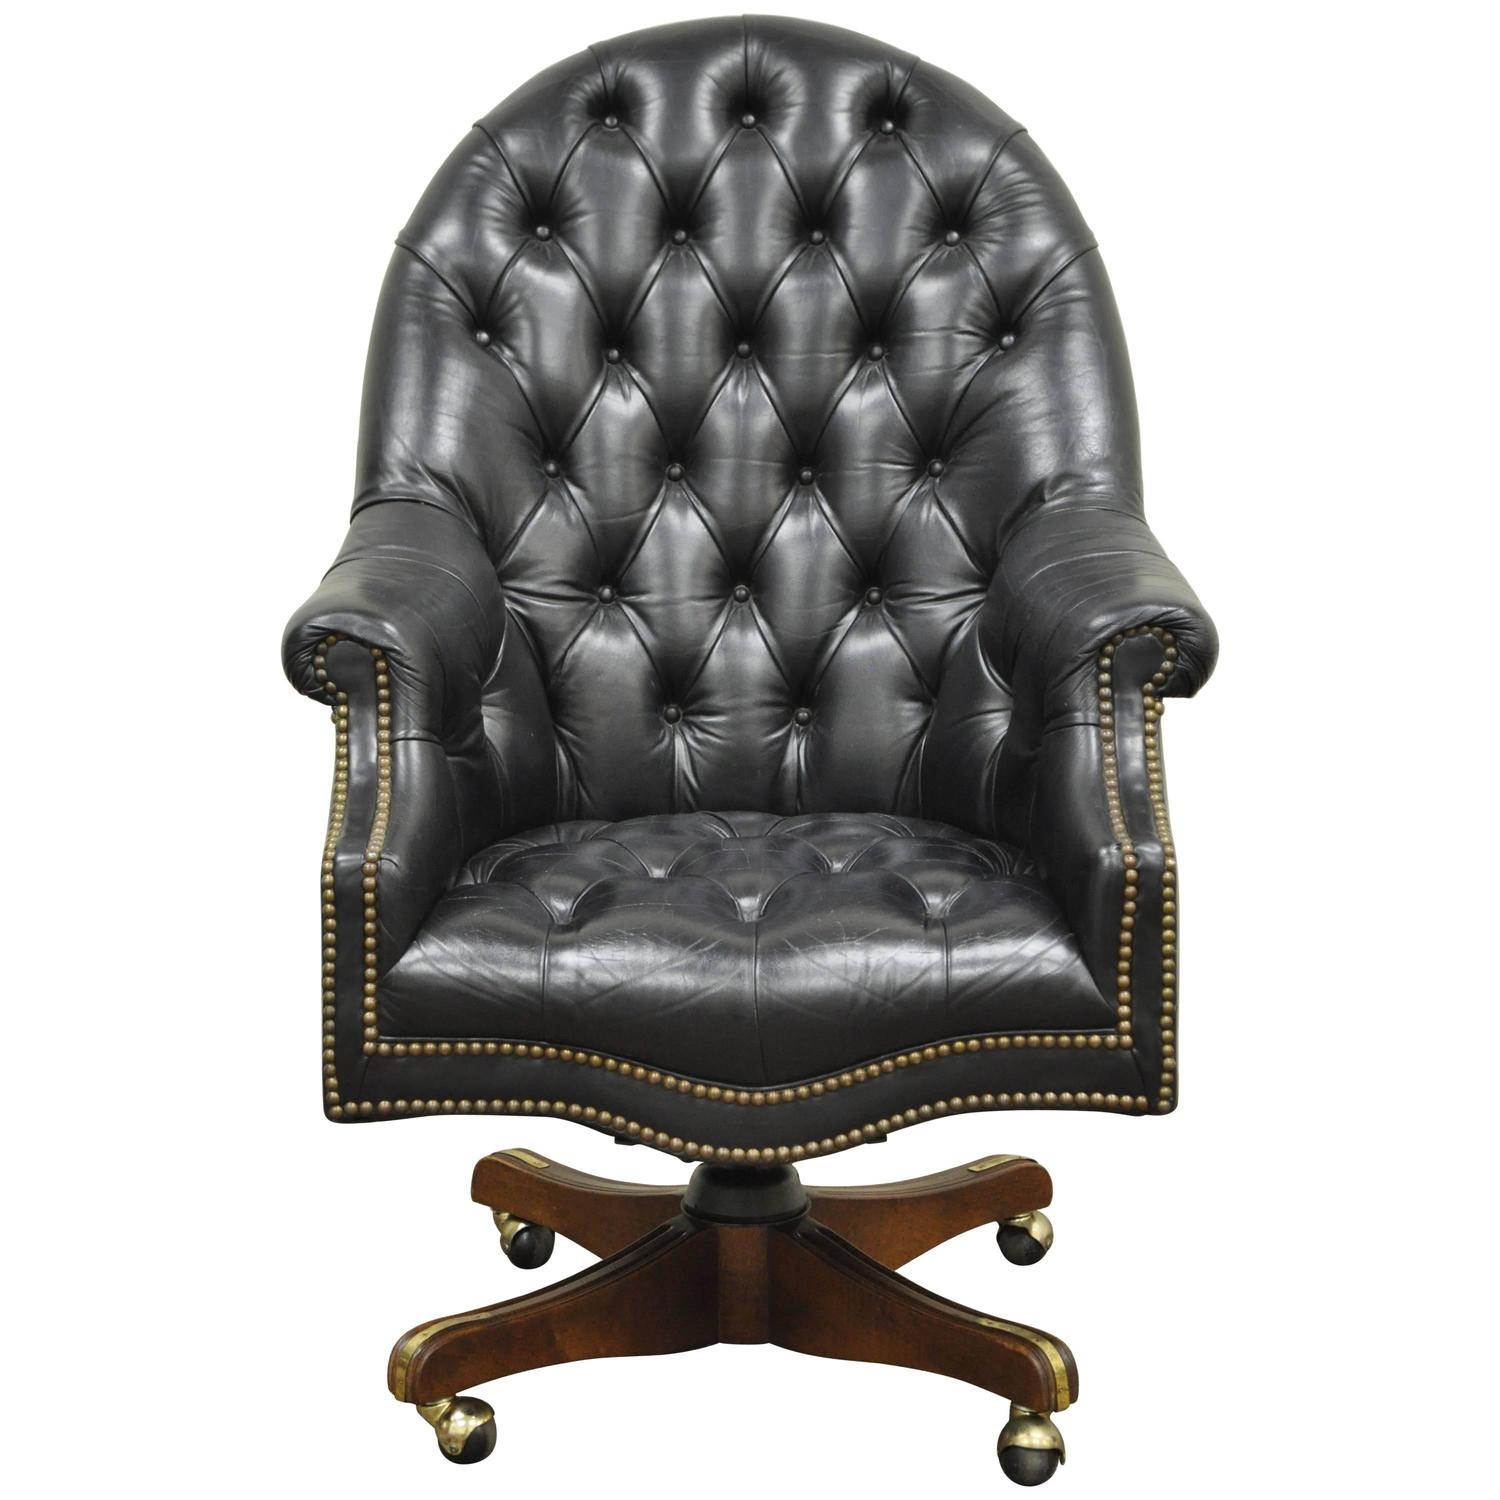 Exceptional Vintage Deep Tufted Black Leather English Chesterfield Style Office Desk  Chair For Sale At 1stdibs